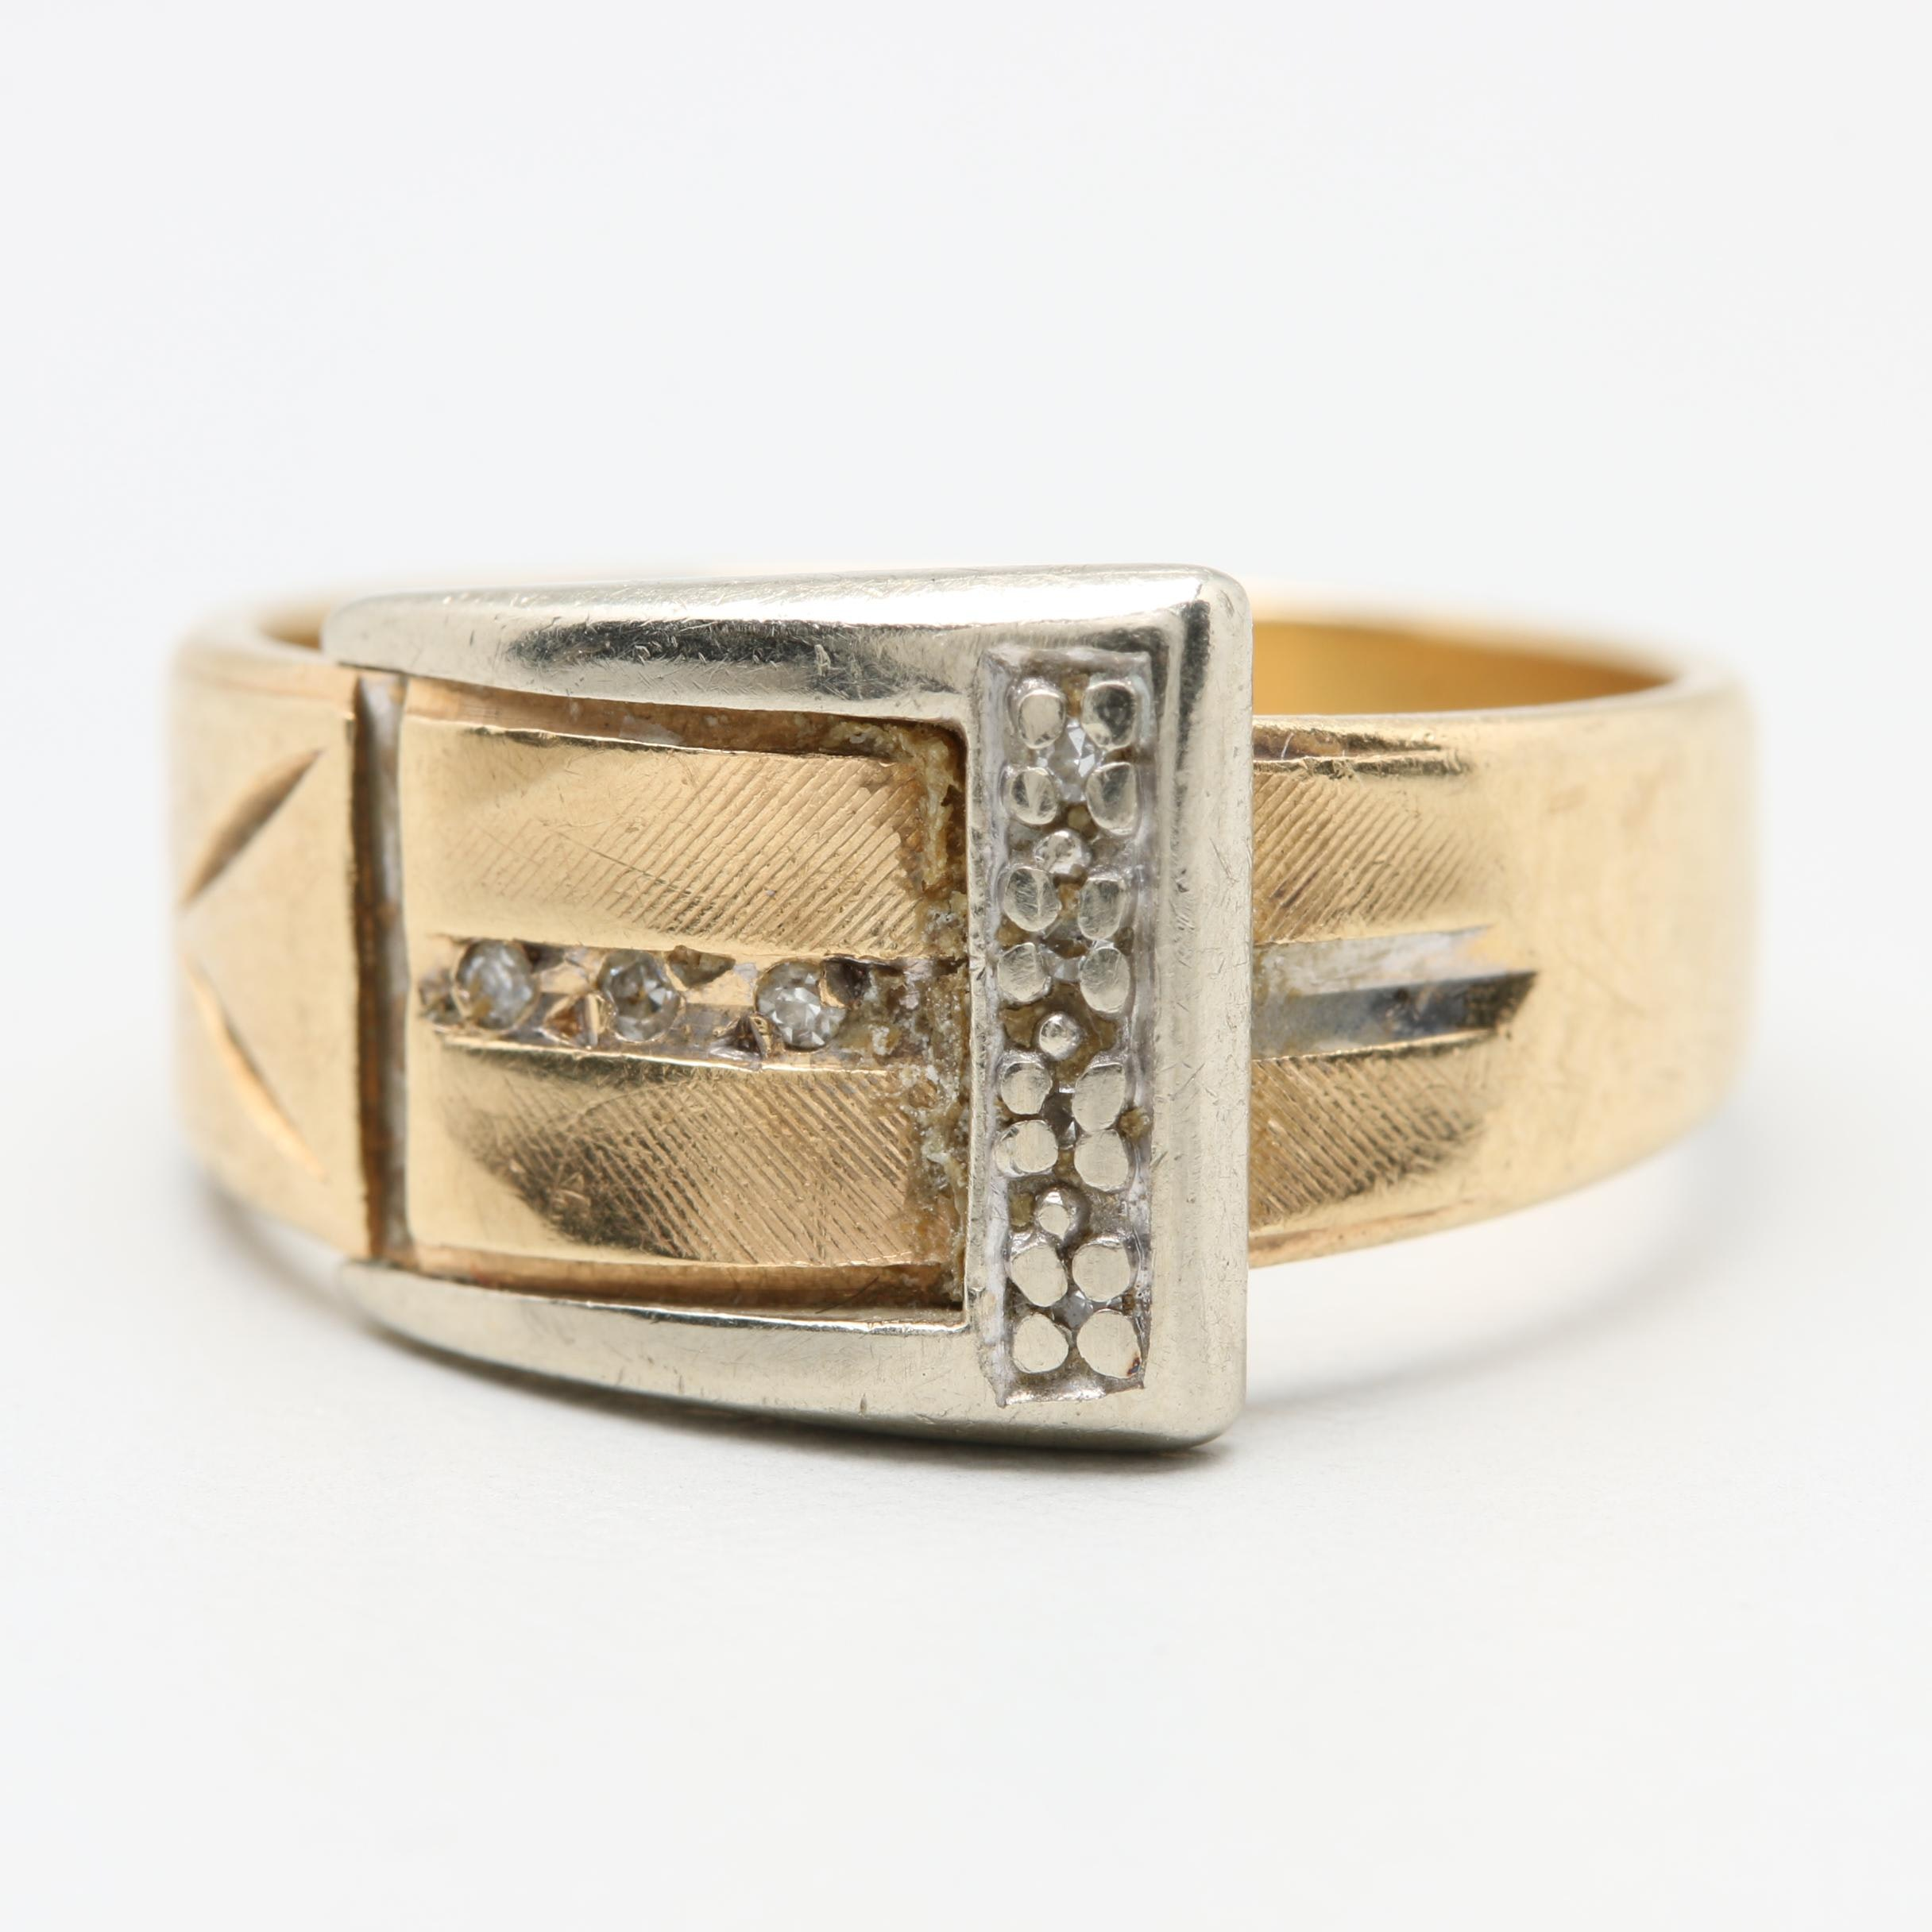 14K Yellow Gold Diamond Buckle Ring with White Gold Accents